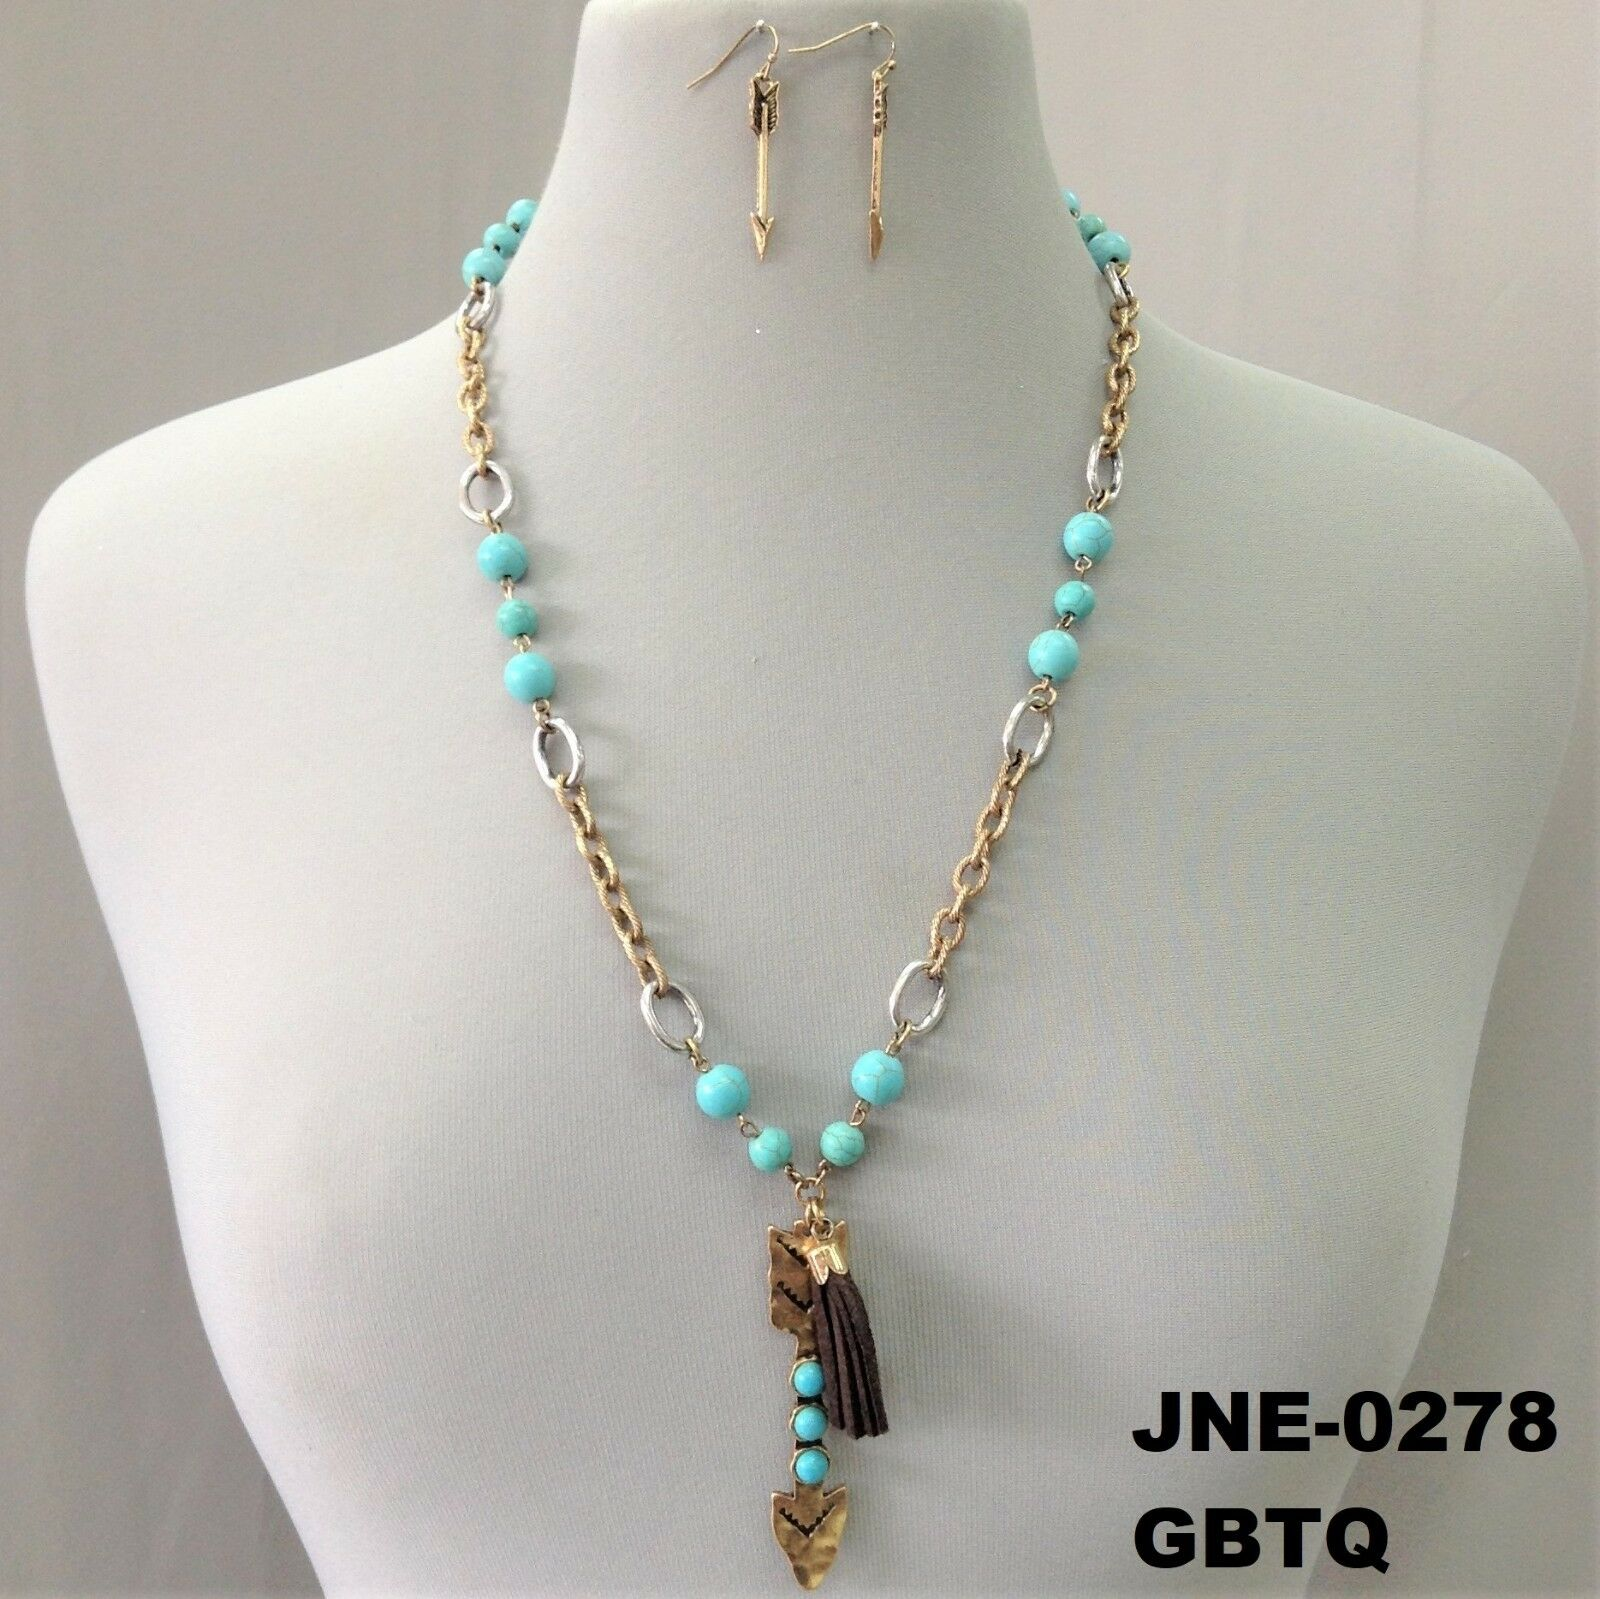 Arrow Pendant Turquoise Charms Gold Finish Necklace /& Earrings JNE-0278 GBTQ